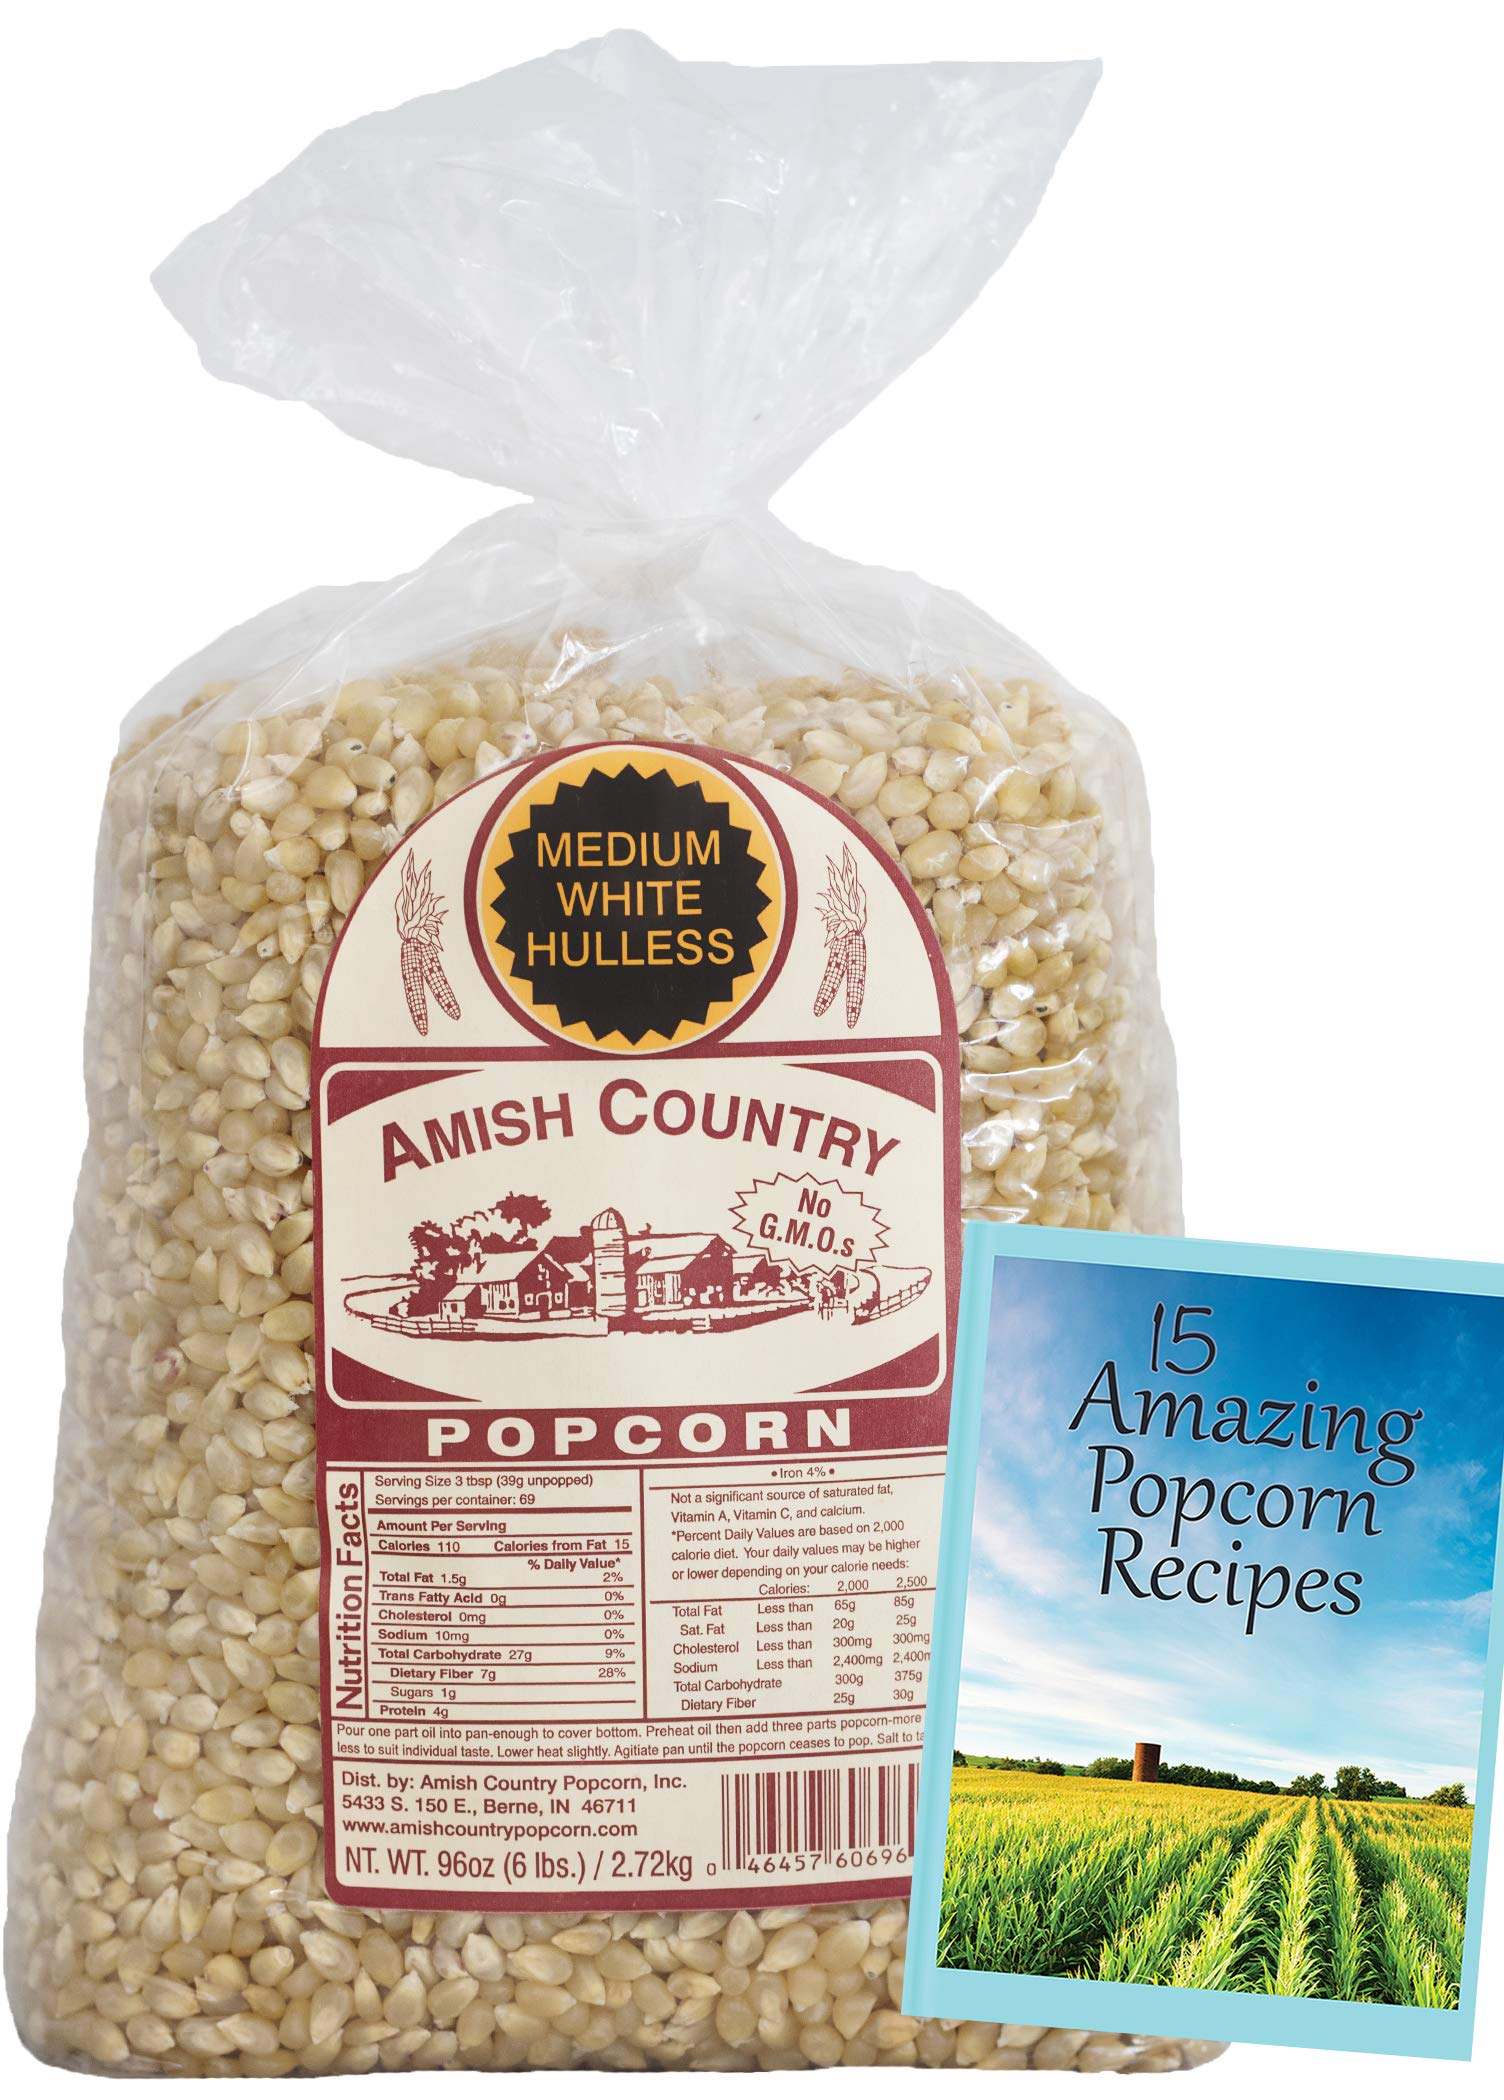 Amish Country Popcorn - Medium White (6 Pound Bag) Popcorn Kernels with Recipe Guide, Old Fashioned, Non GMO, Gluten Free, Microwaveable, Stovetop and Air Popper Friendly by Amish Country Popcorn (Image #2)